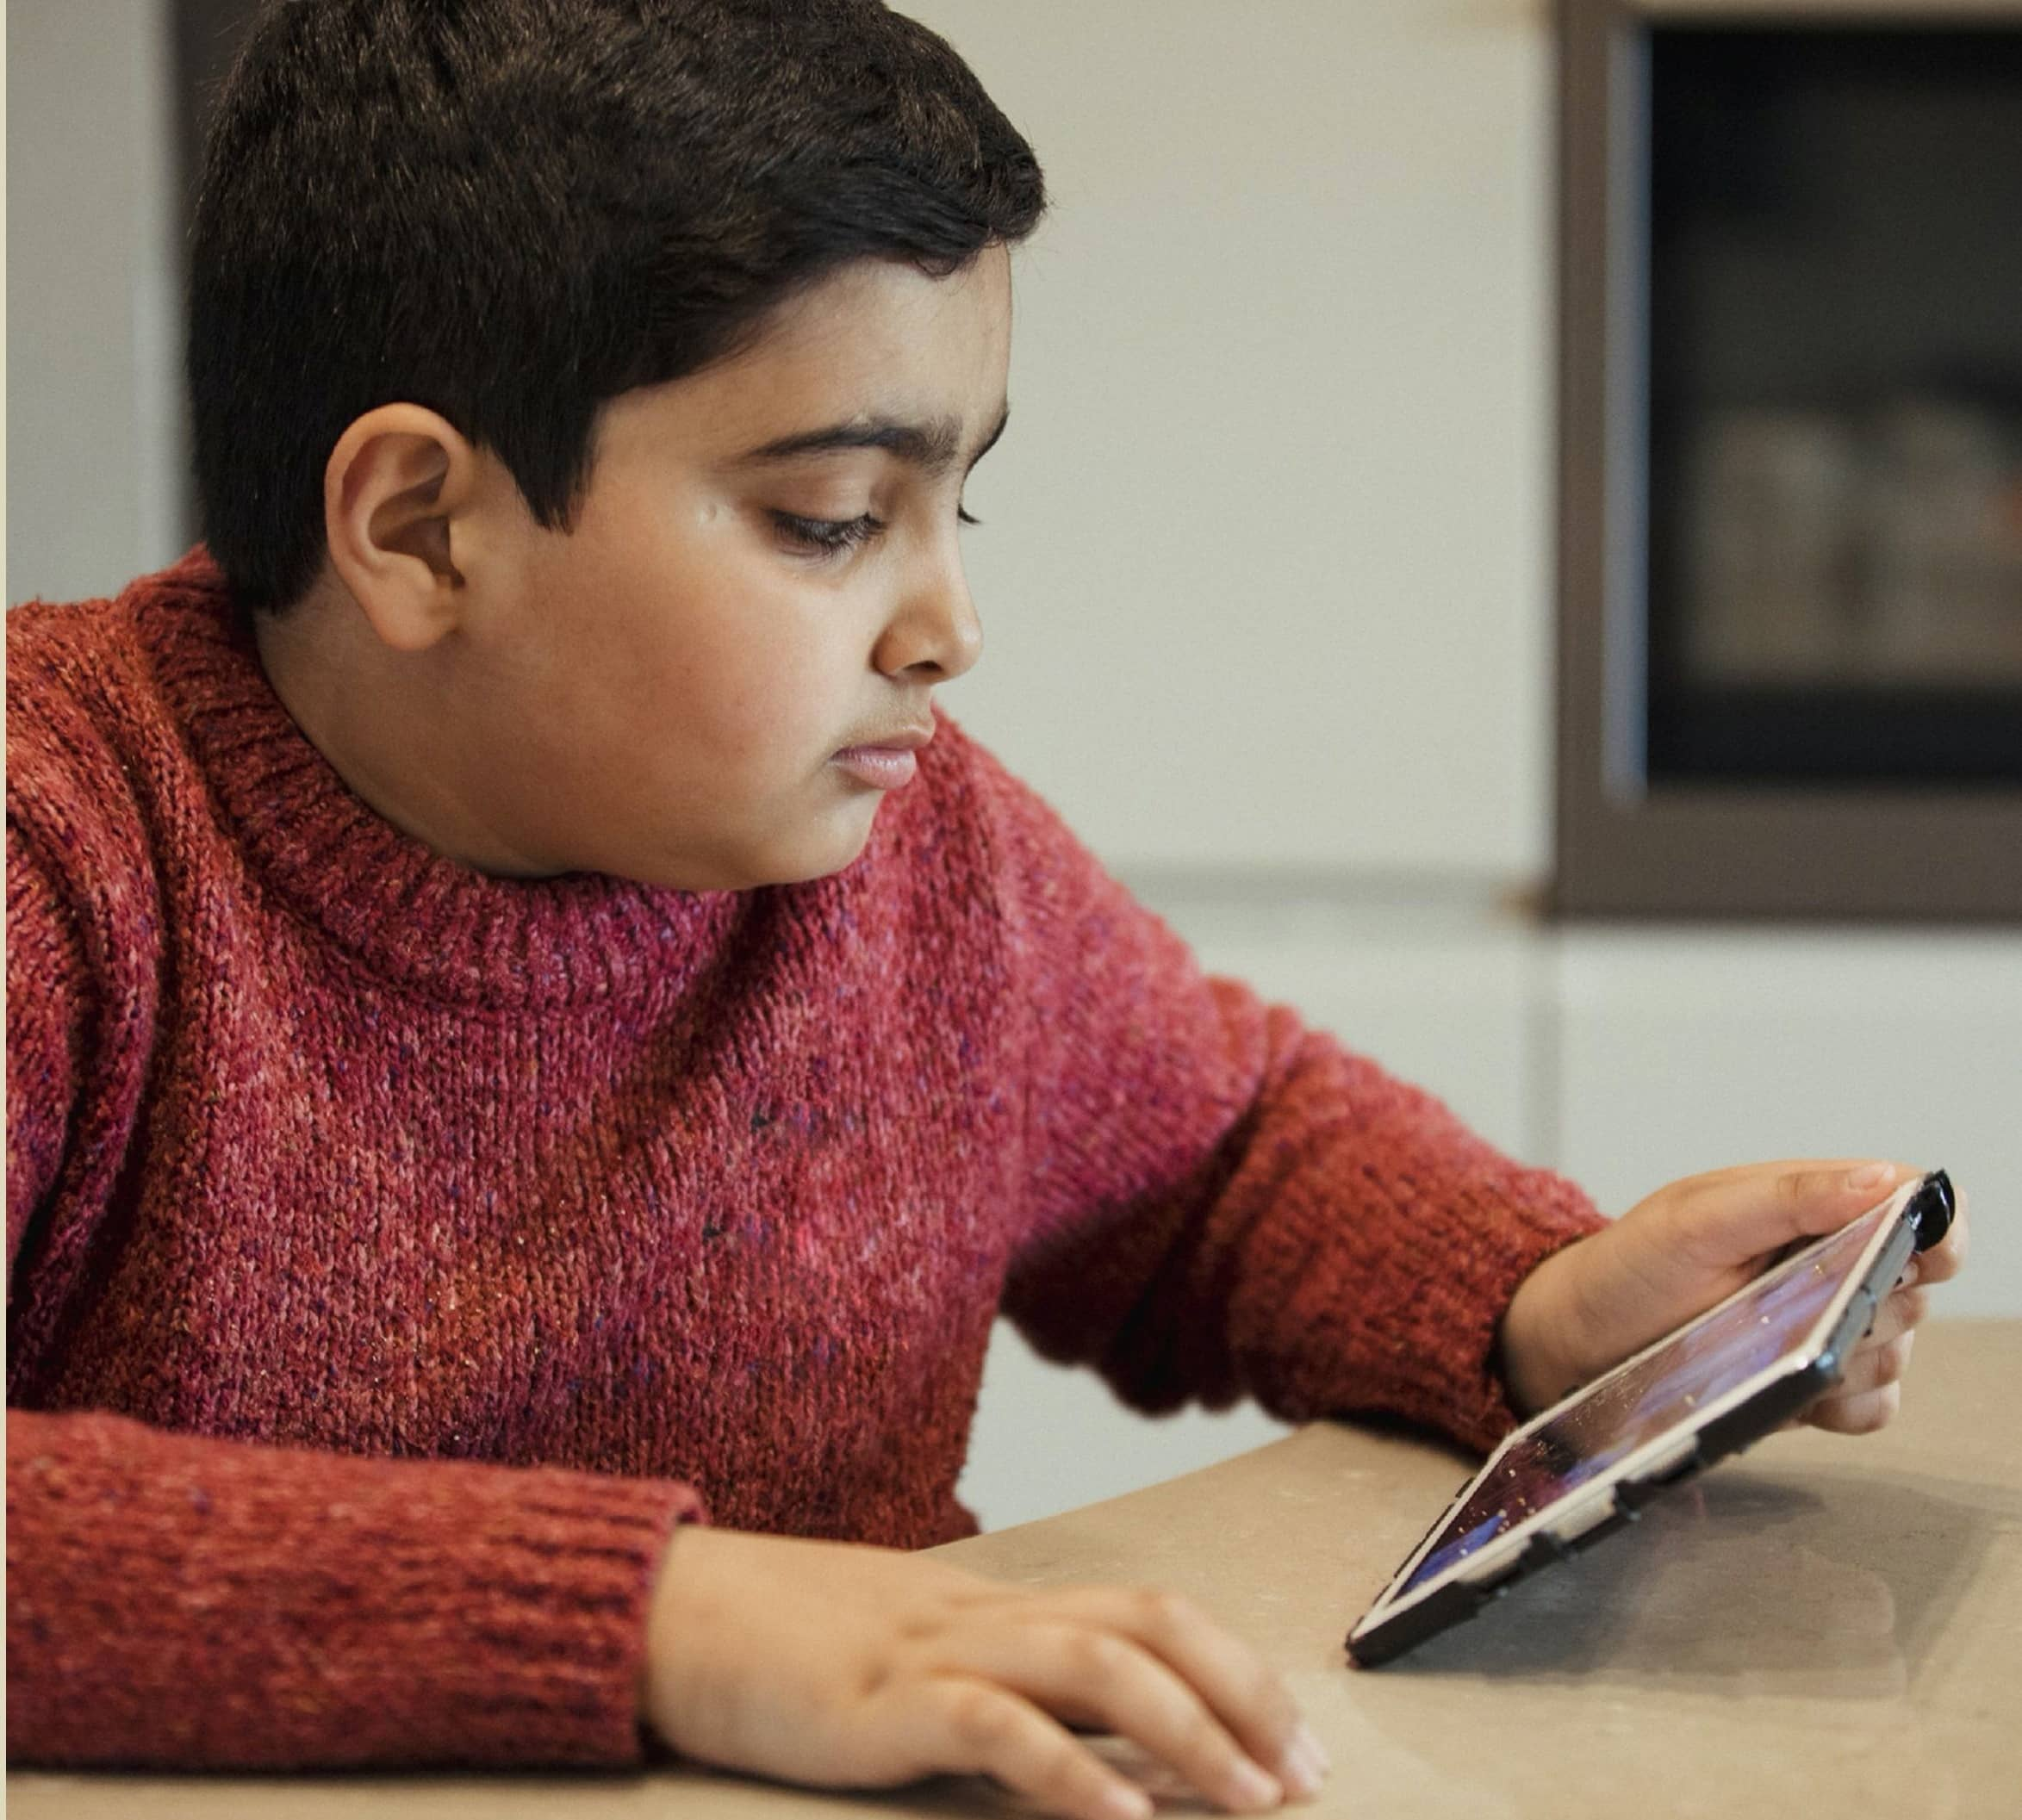 FDA APPROVES VIDEO GAME FOR TREATING ADHD IN KIDS